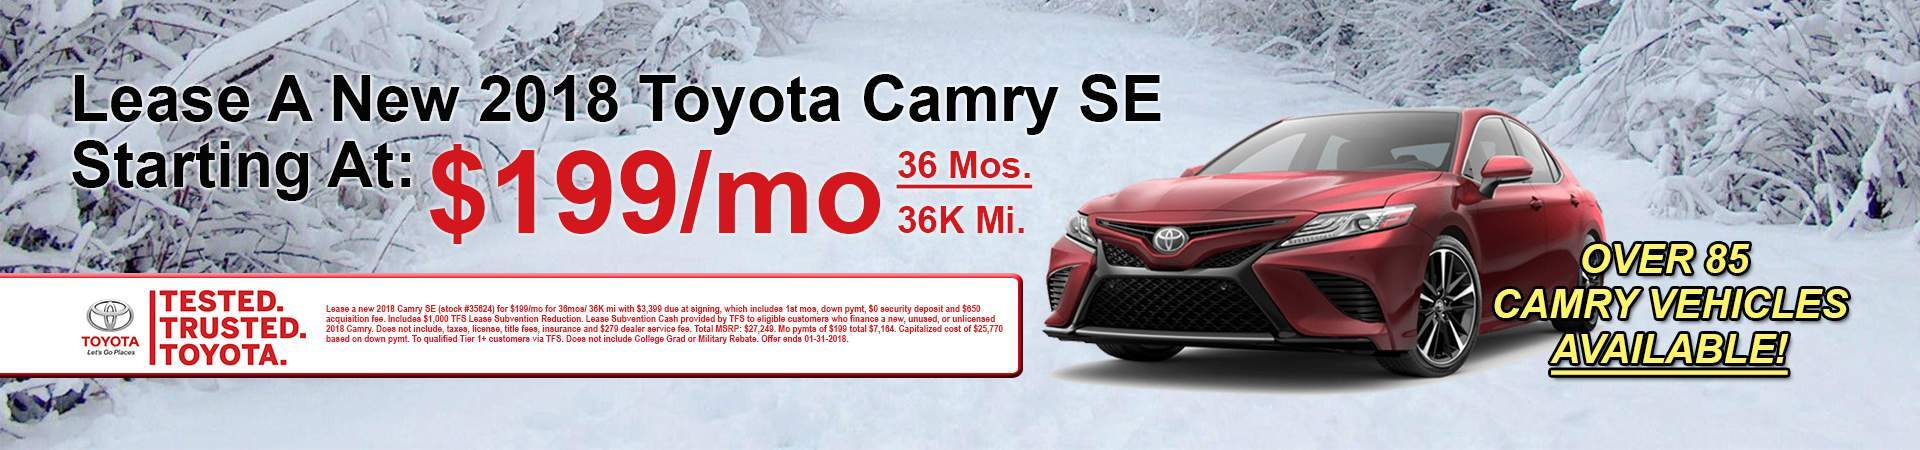 January Camry Deals